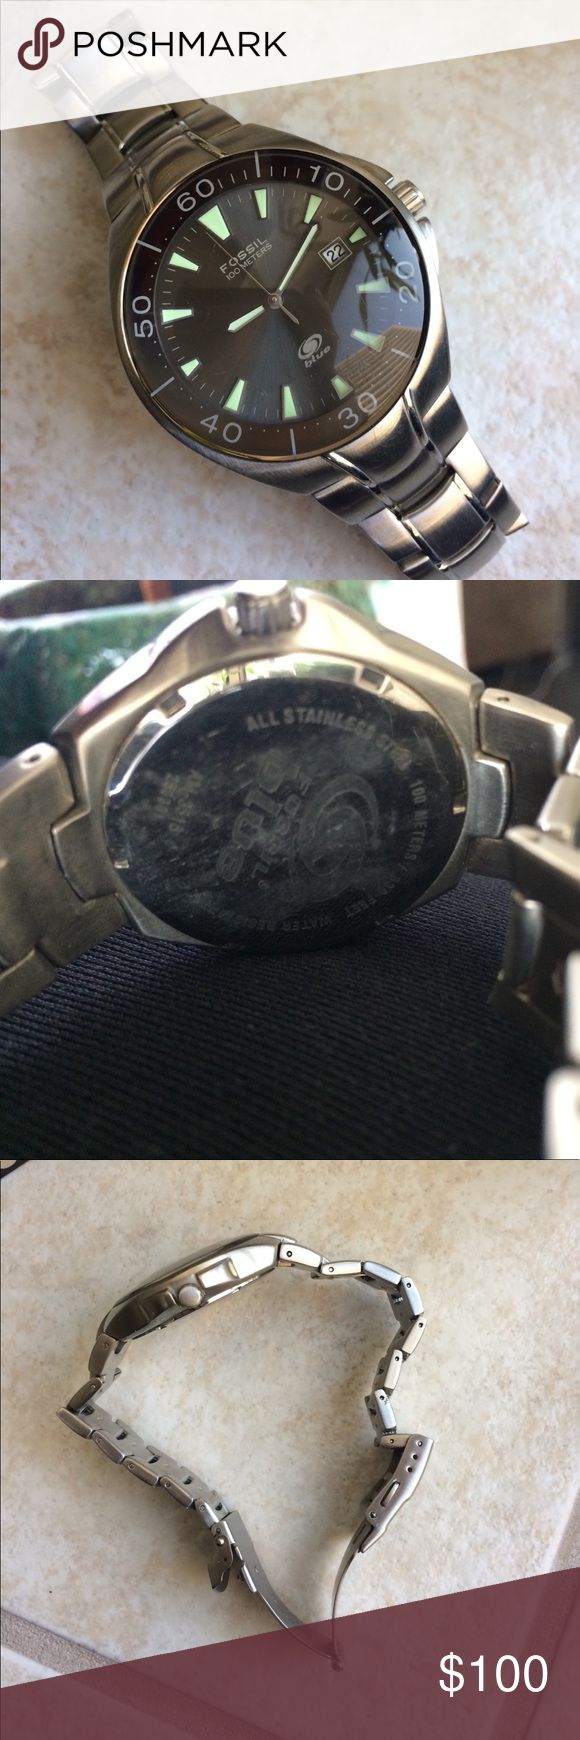 Men's Fossil Blue watch Good condition, a few tiny scratches on the face (too small to be seen in pics). No links have been removed from original size. Might need new battery, usually Fossil stores will do this for free. I can't really tell if the face is black or dark dark brown. Glows brightly in the dark Fossil Accessories Watches